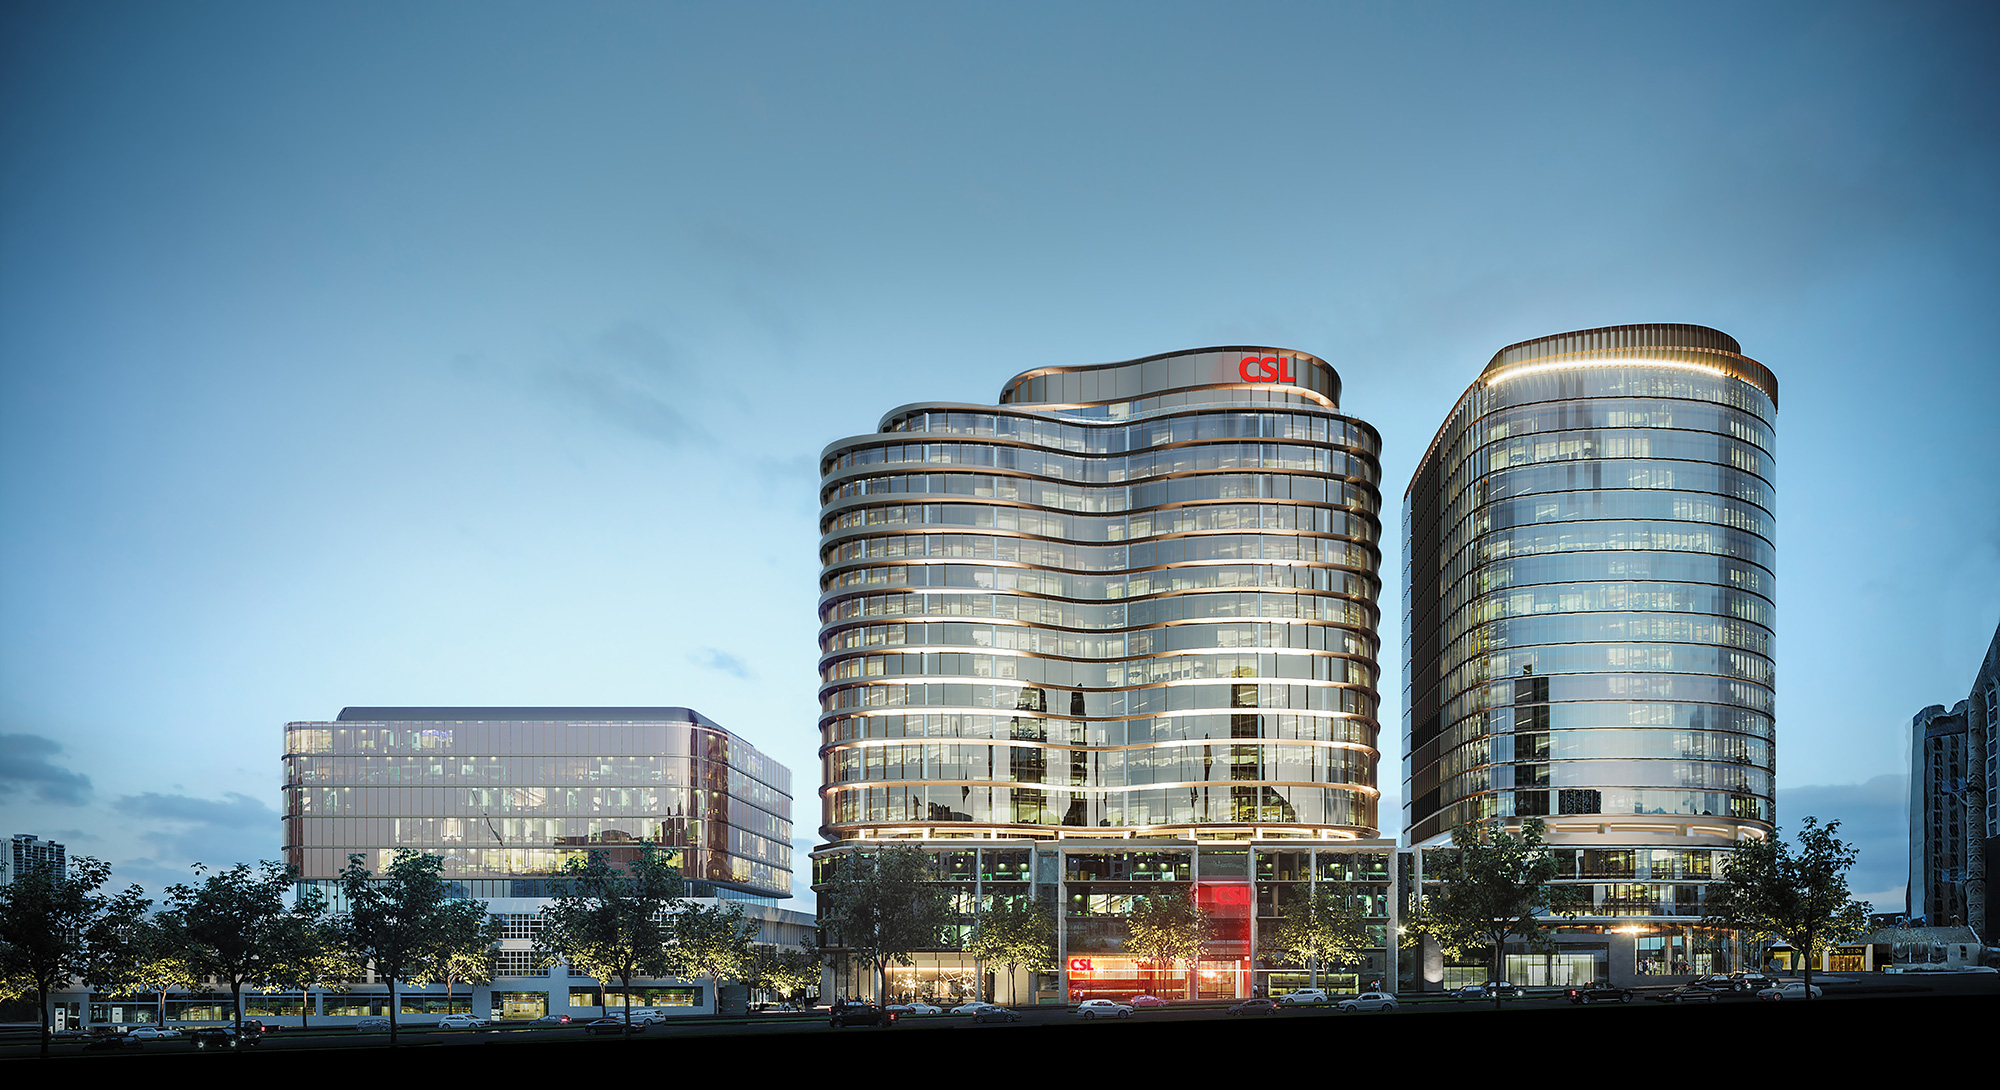 CSL headquaters build by PDG